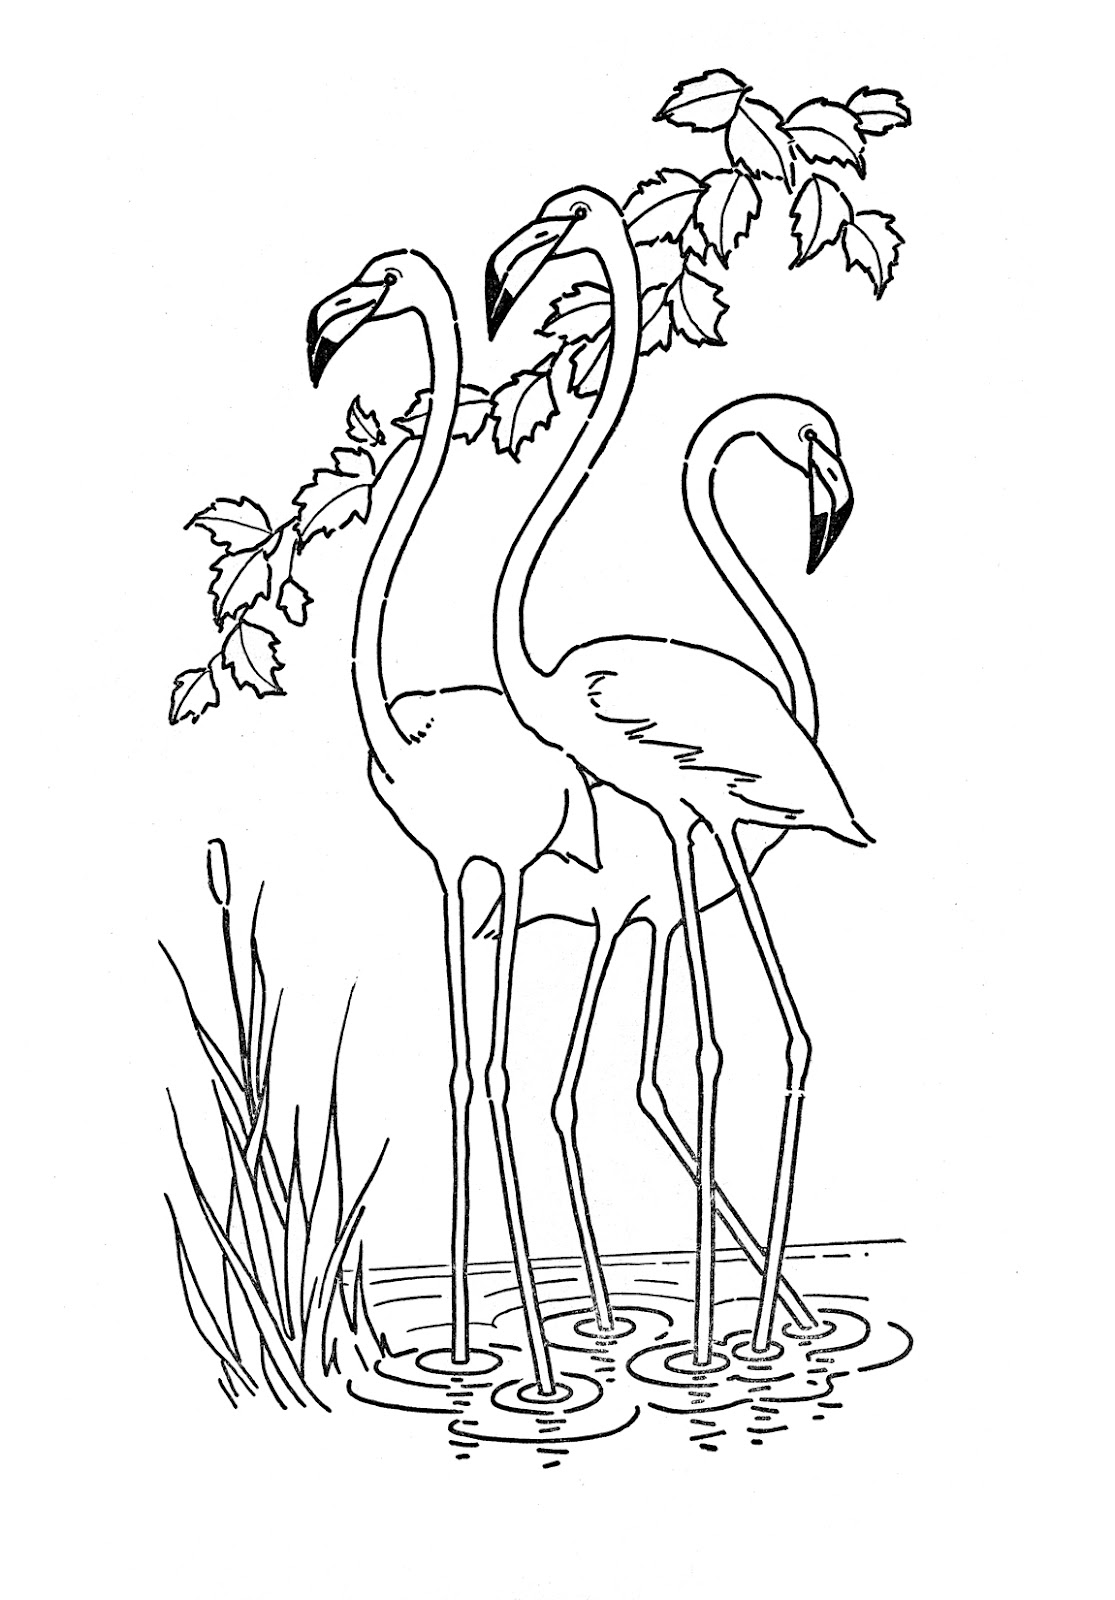 coloring picture printable 40 free printable coloring pages for kids printable coloring picture